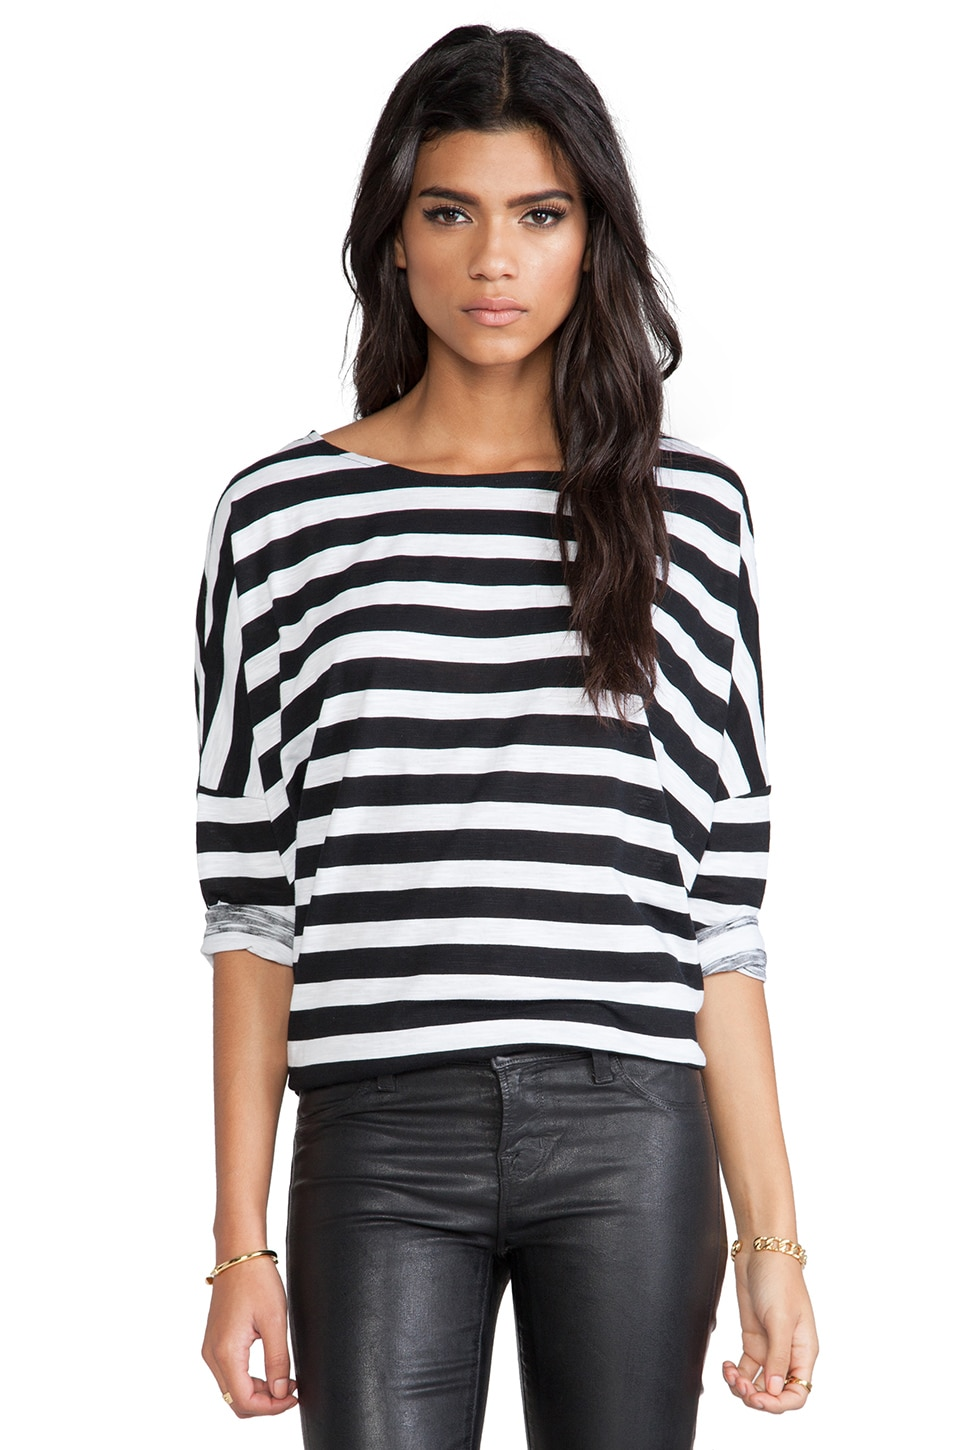 Evil Twin Out of Line Box Tunic Tee in Black & White